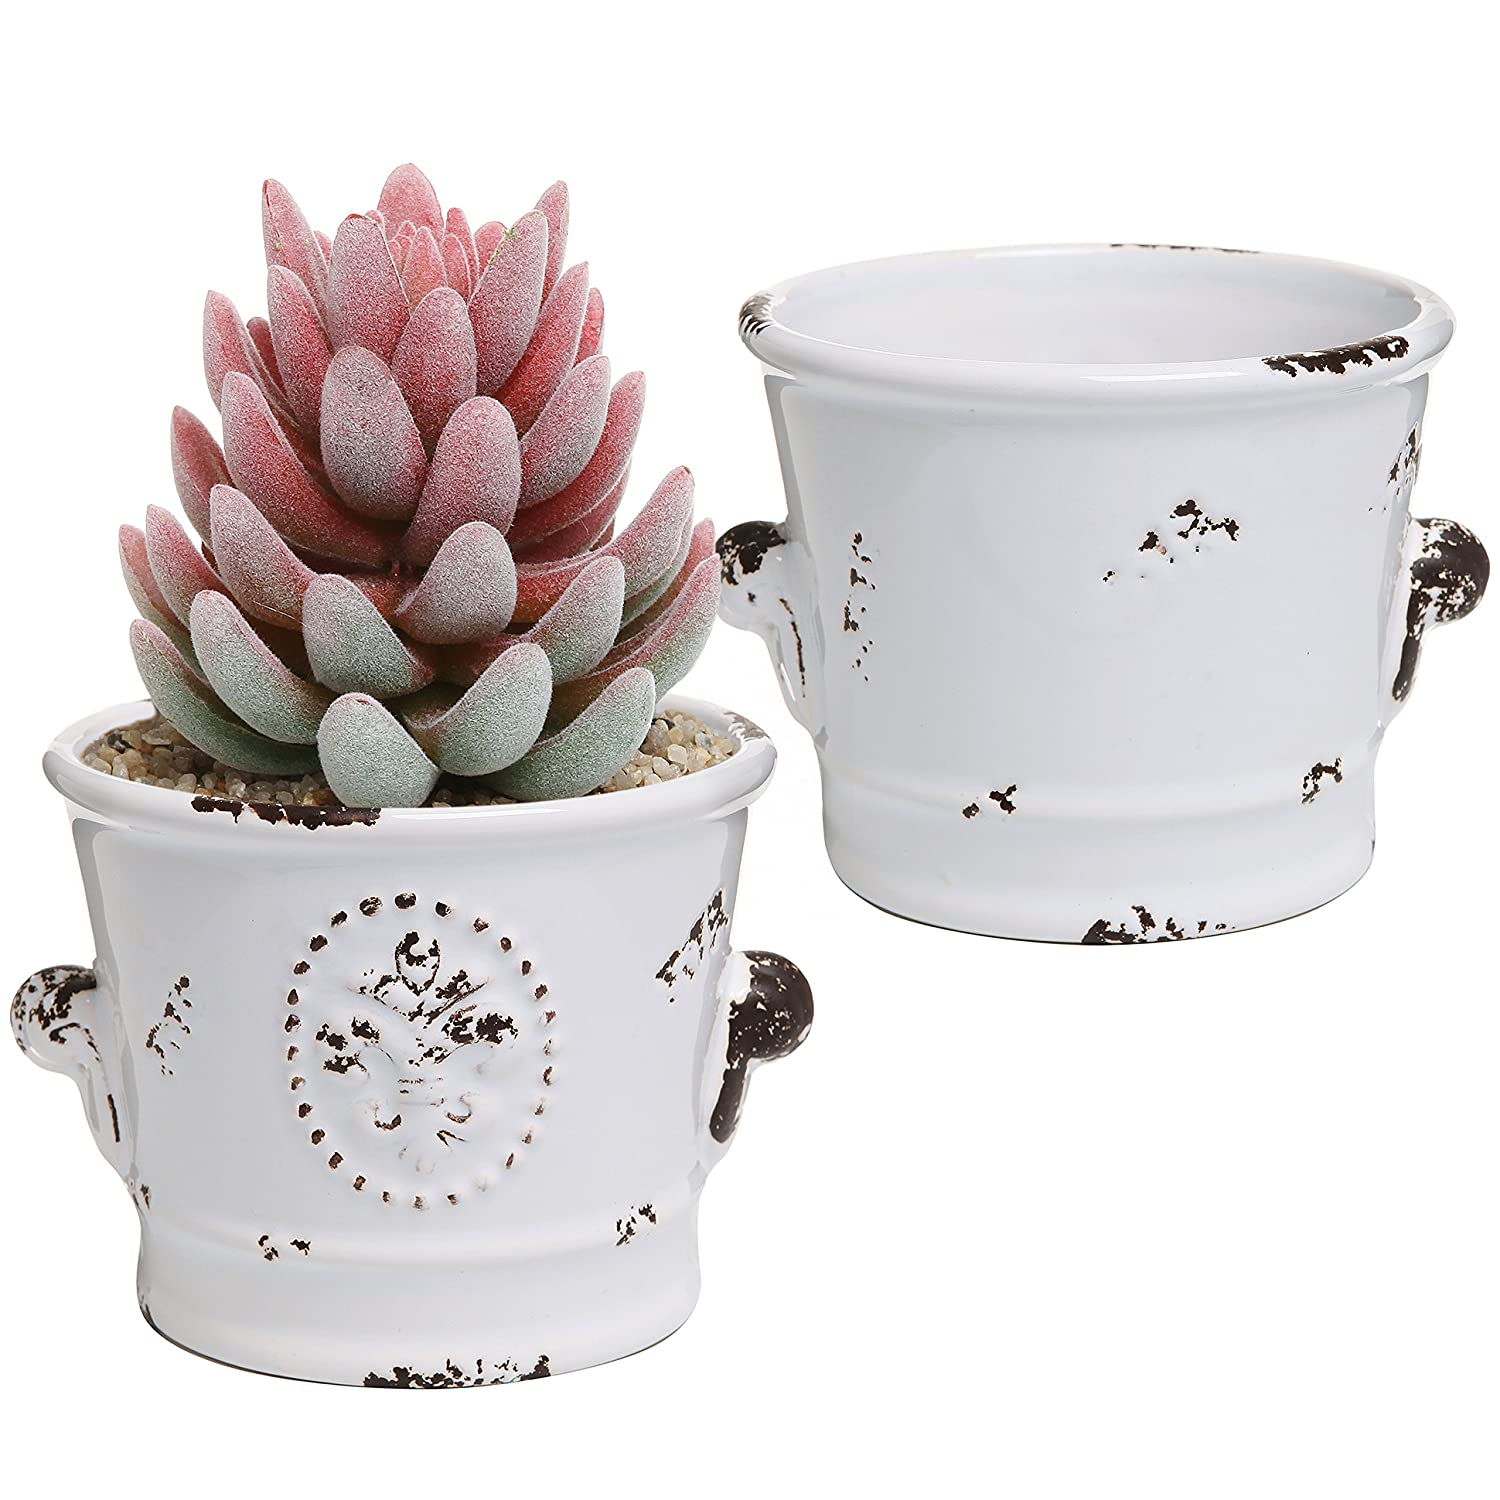 MyGift Rustic White Ceramic 4-Inch Succulent Planter Pots, Set of 2